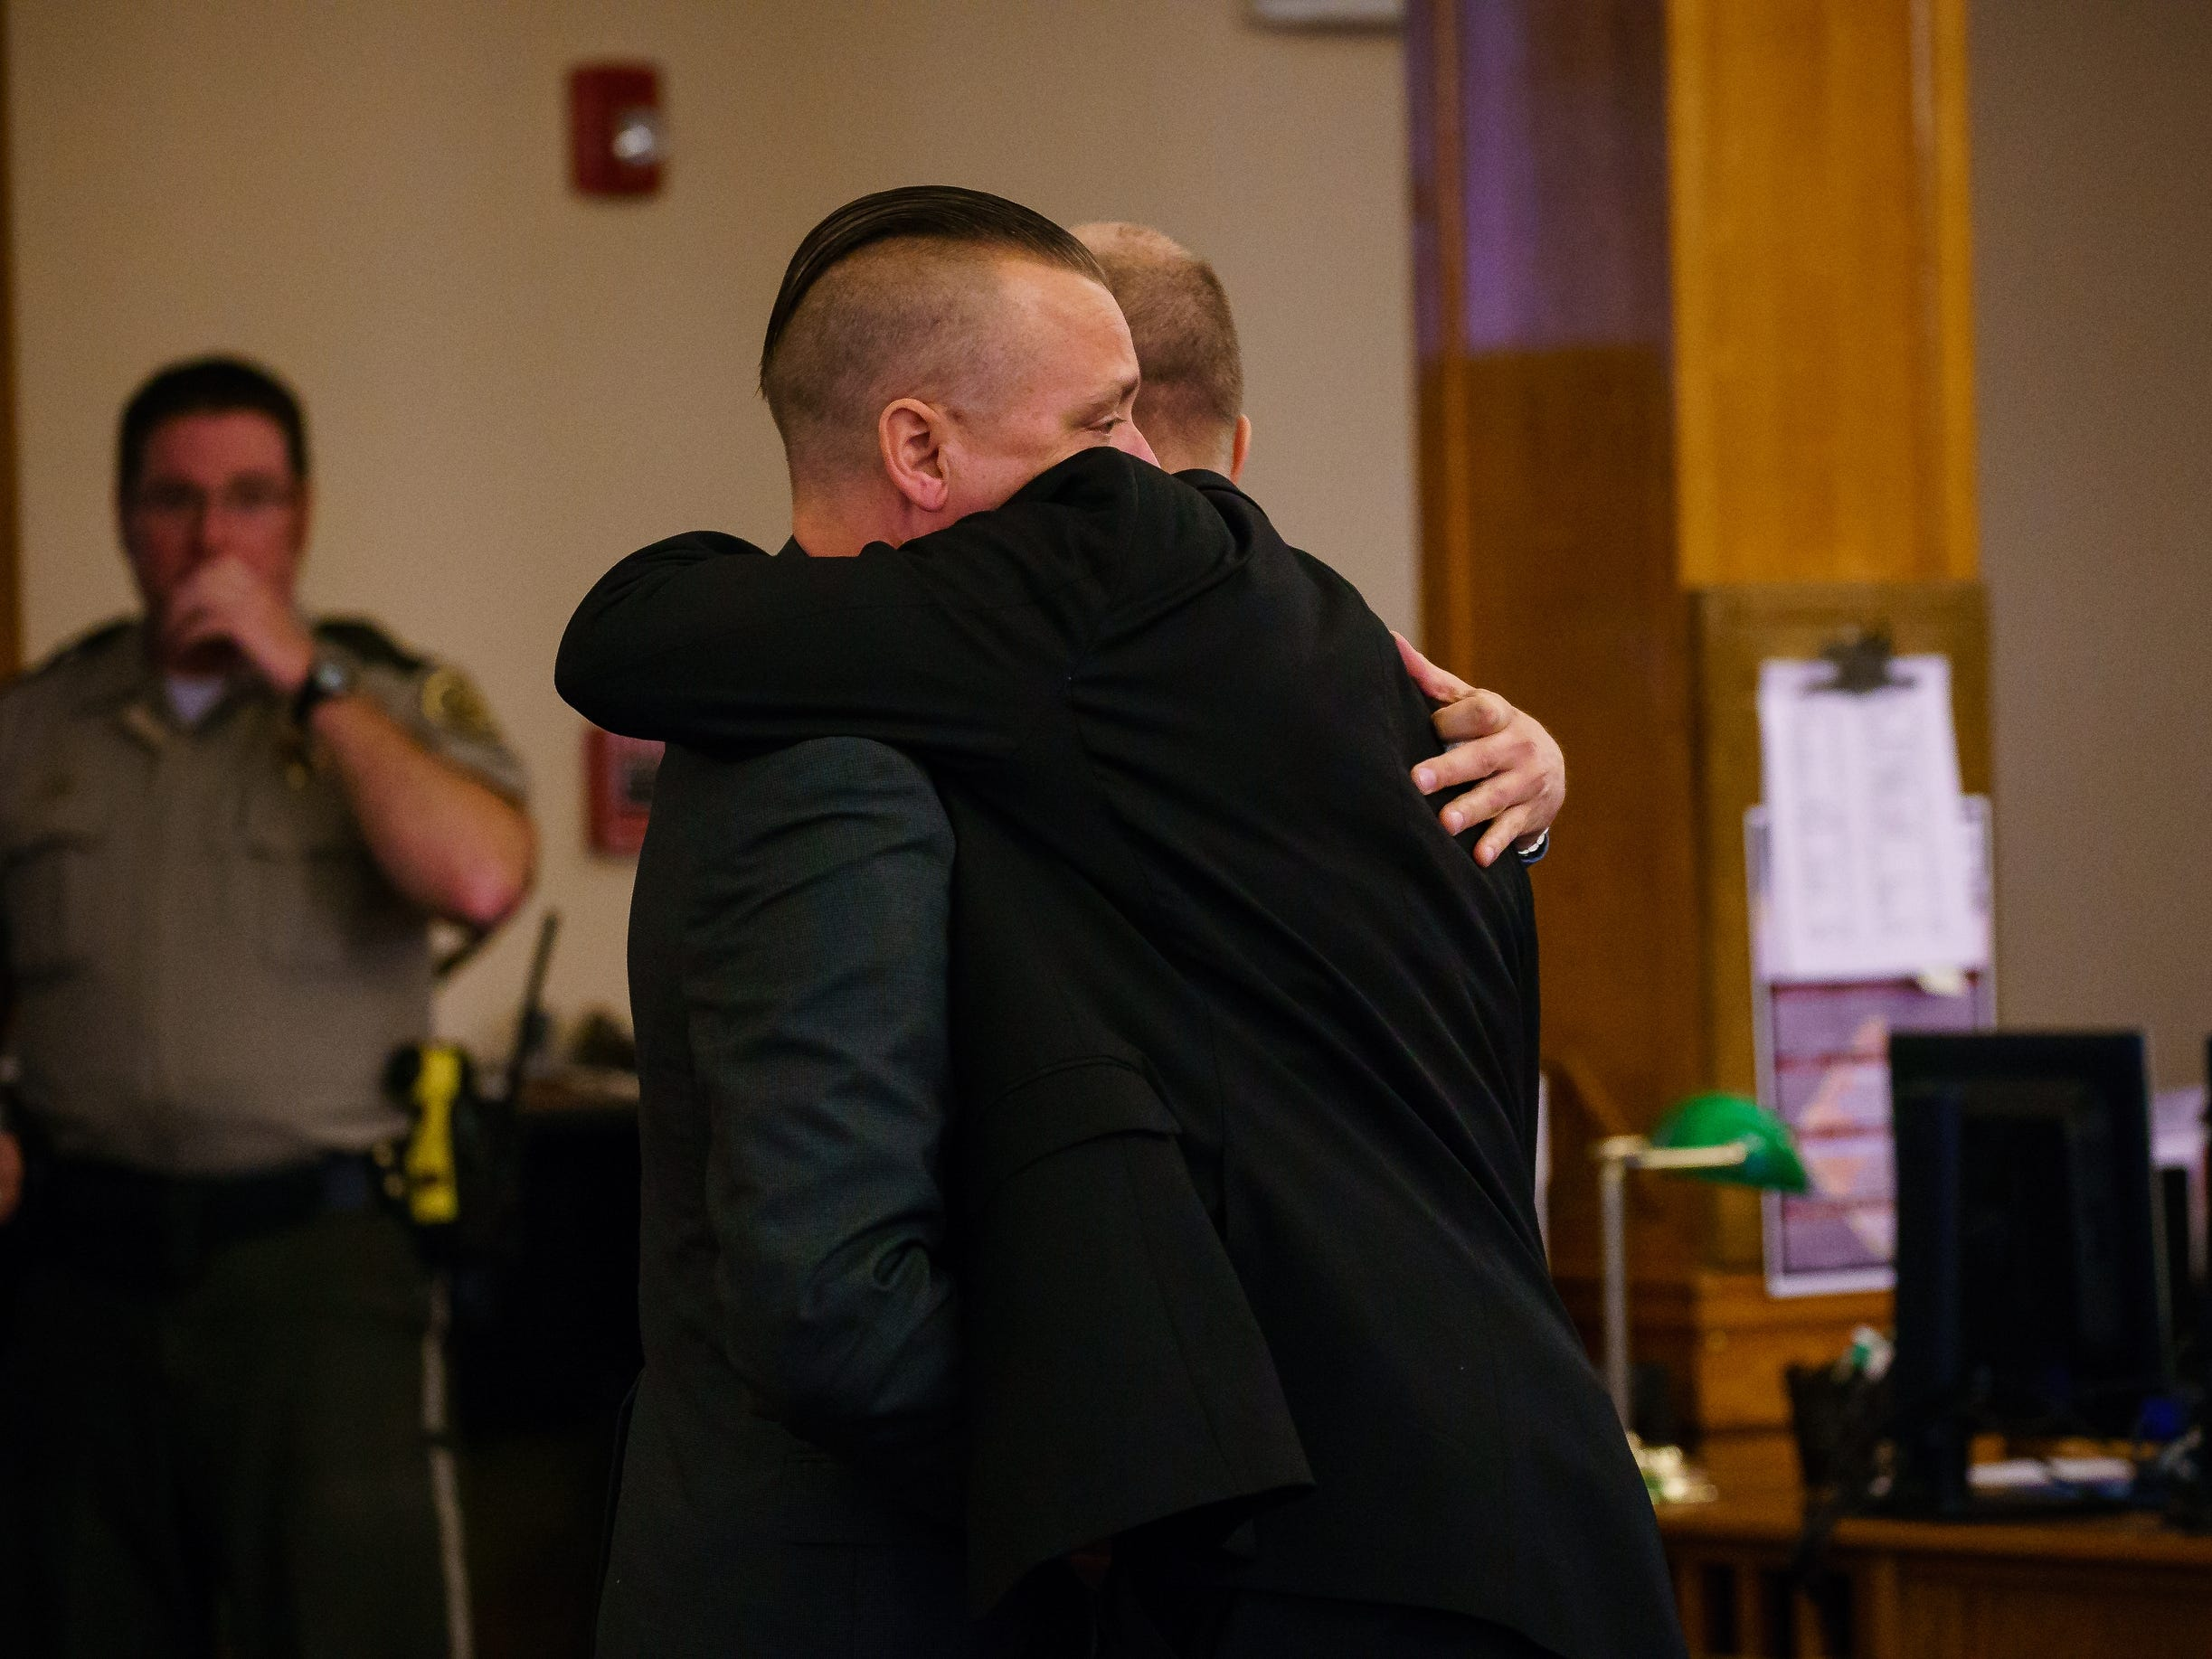 Troy Griffin, left, hugs his defense lawyer, Robert Rehkemper, right, after a Dallas County jury found him not guilty in his marital rape case at the Dallas County Courthouse on Thursday, Oct. 25, 2018, in Adel. Griffin's ex-wife Gina Battani accused him of raping her repeatedly while they were married.